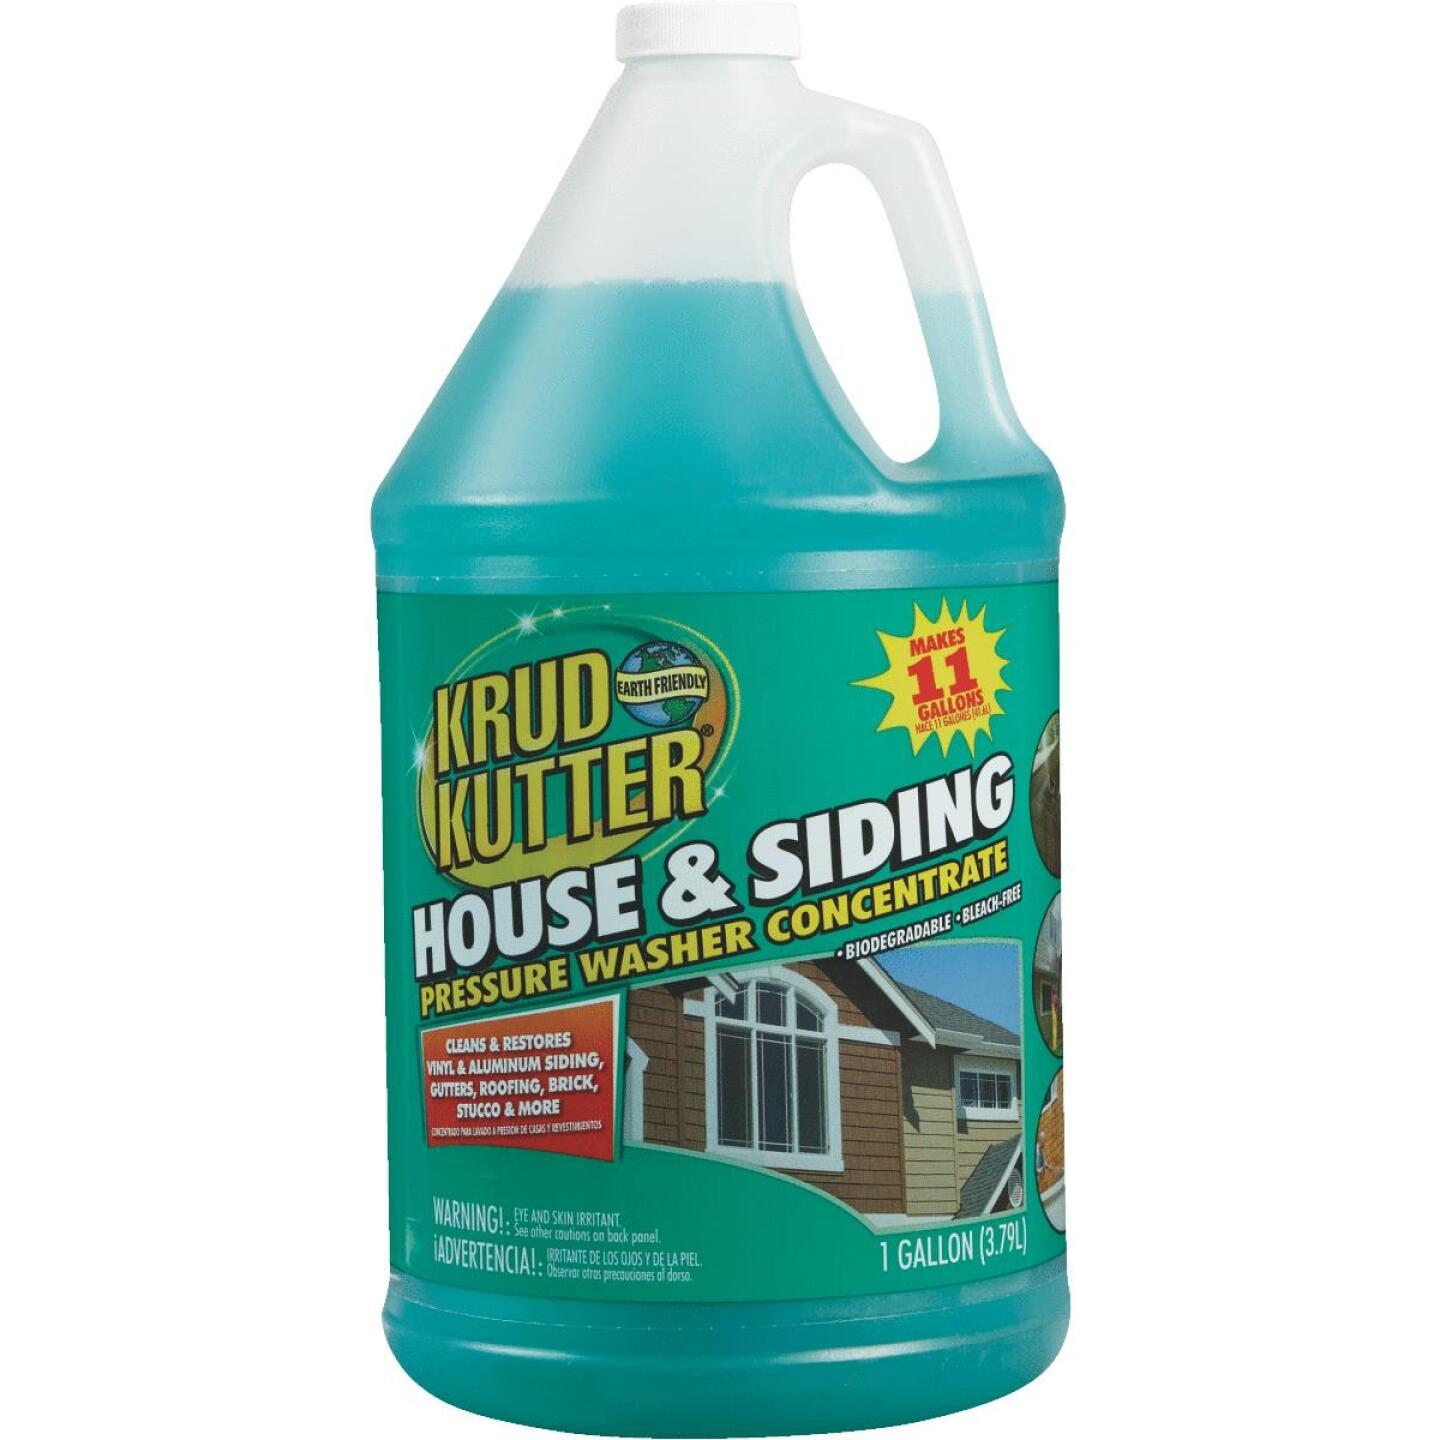 Krud Kutter House And Siding Cleaner Pressure Washer Concentrate